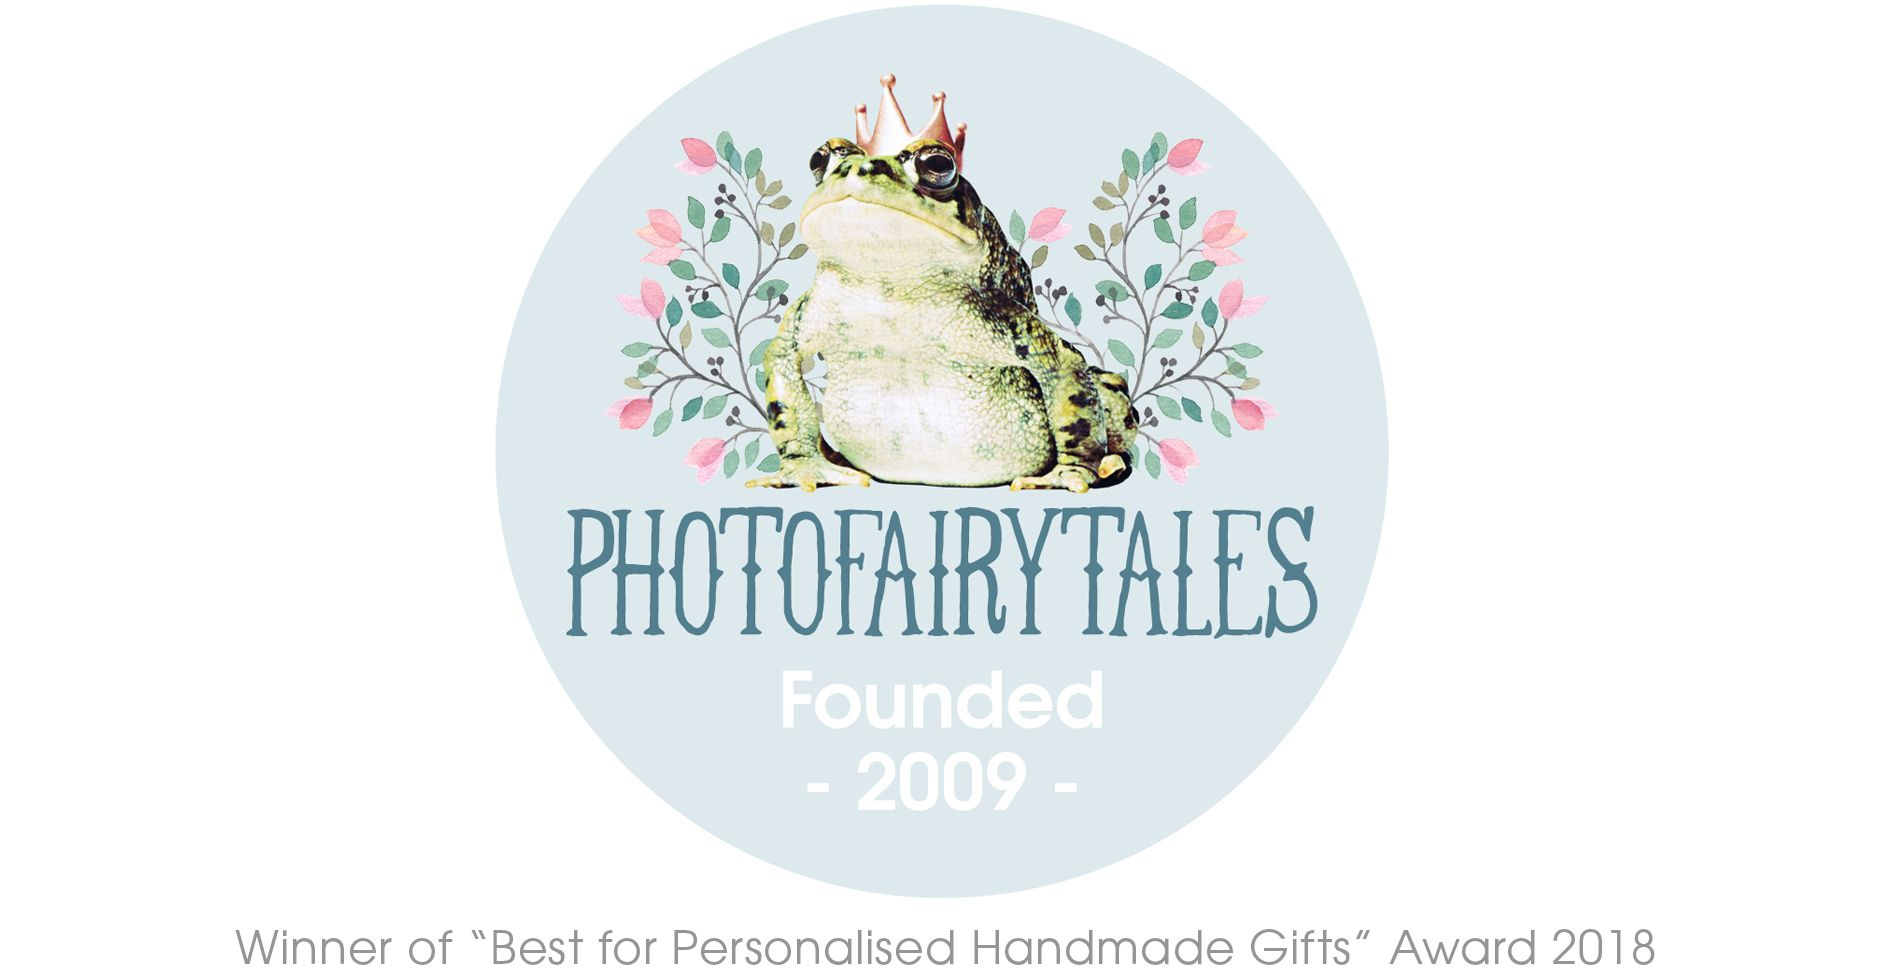 PhotoFairytales | personalised, handmade, unique gifts and keepsakes